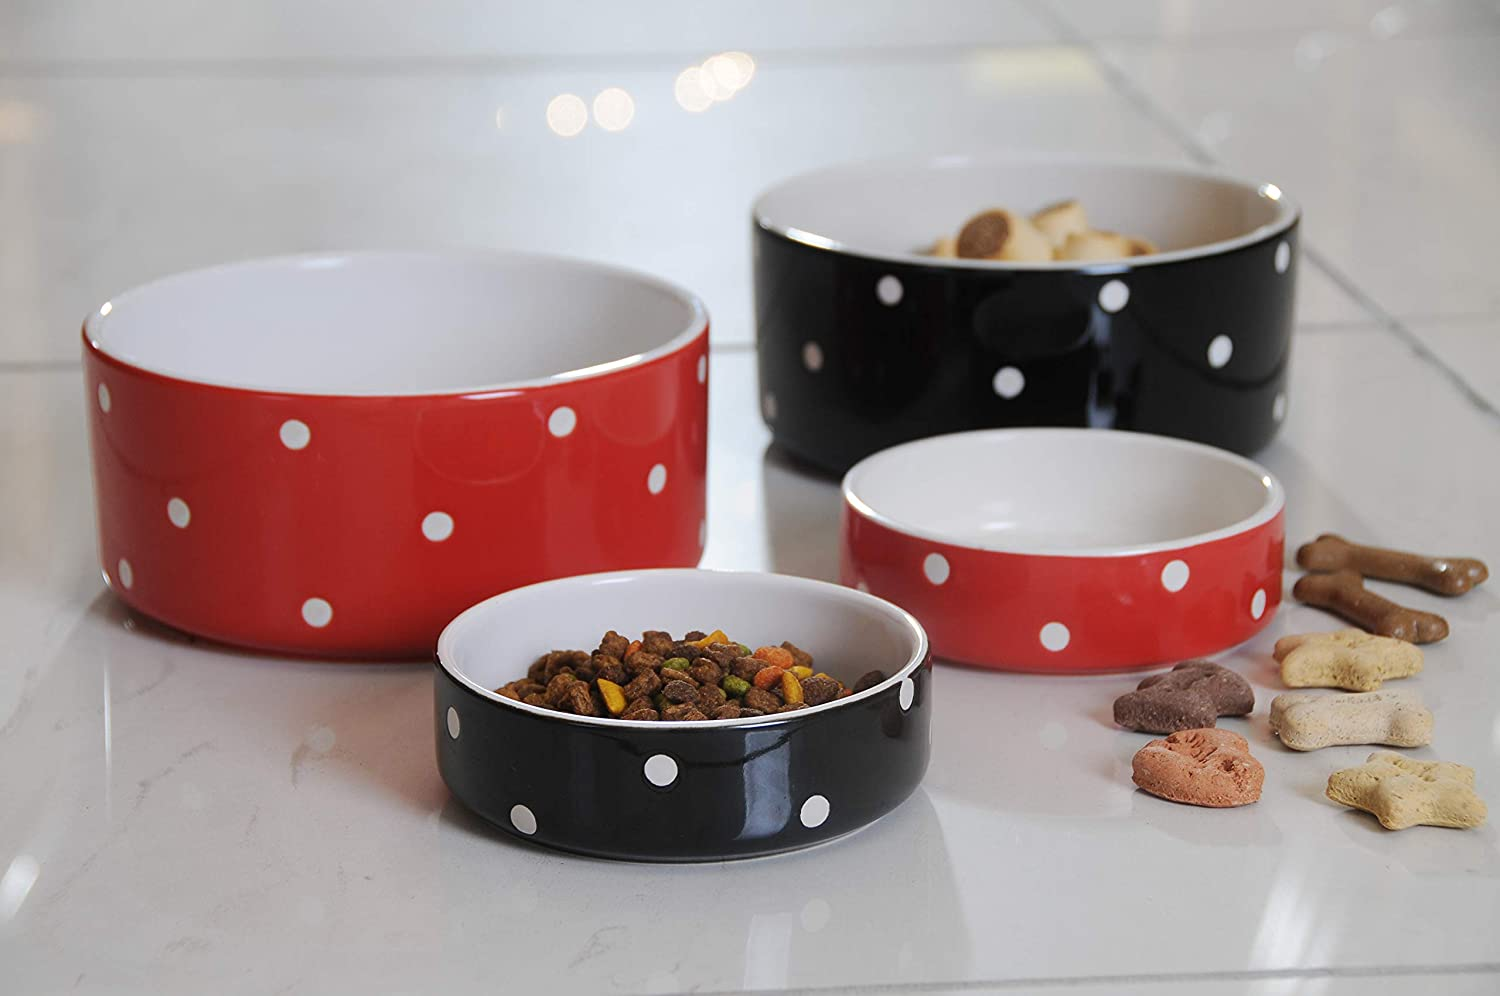 Inventive Mason Cash Polka Dot Red Bowl Making Things Convenient For The People Dishes, Feeders & Fountains Pet Supplies